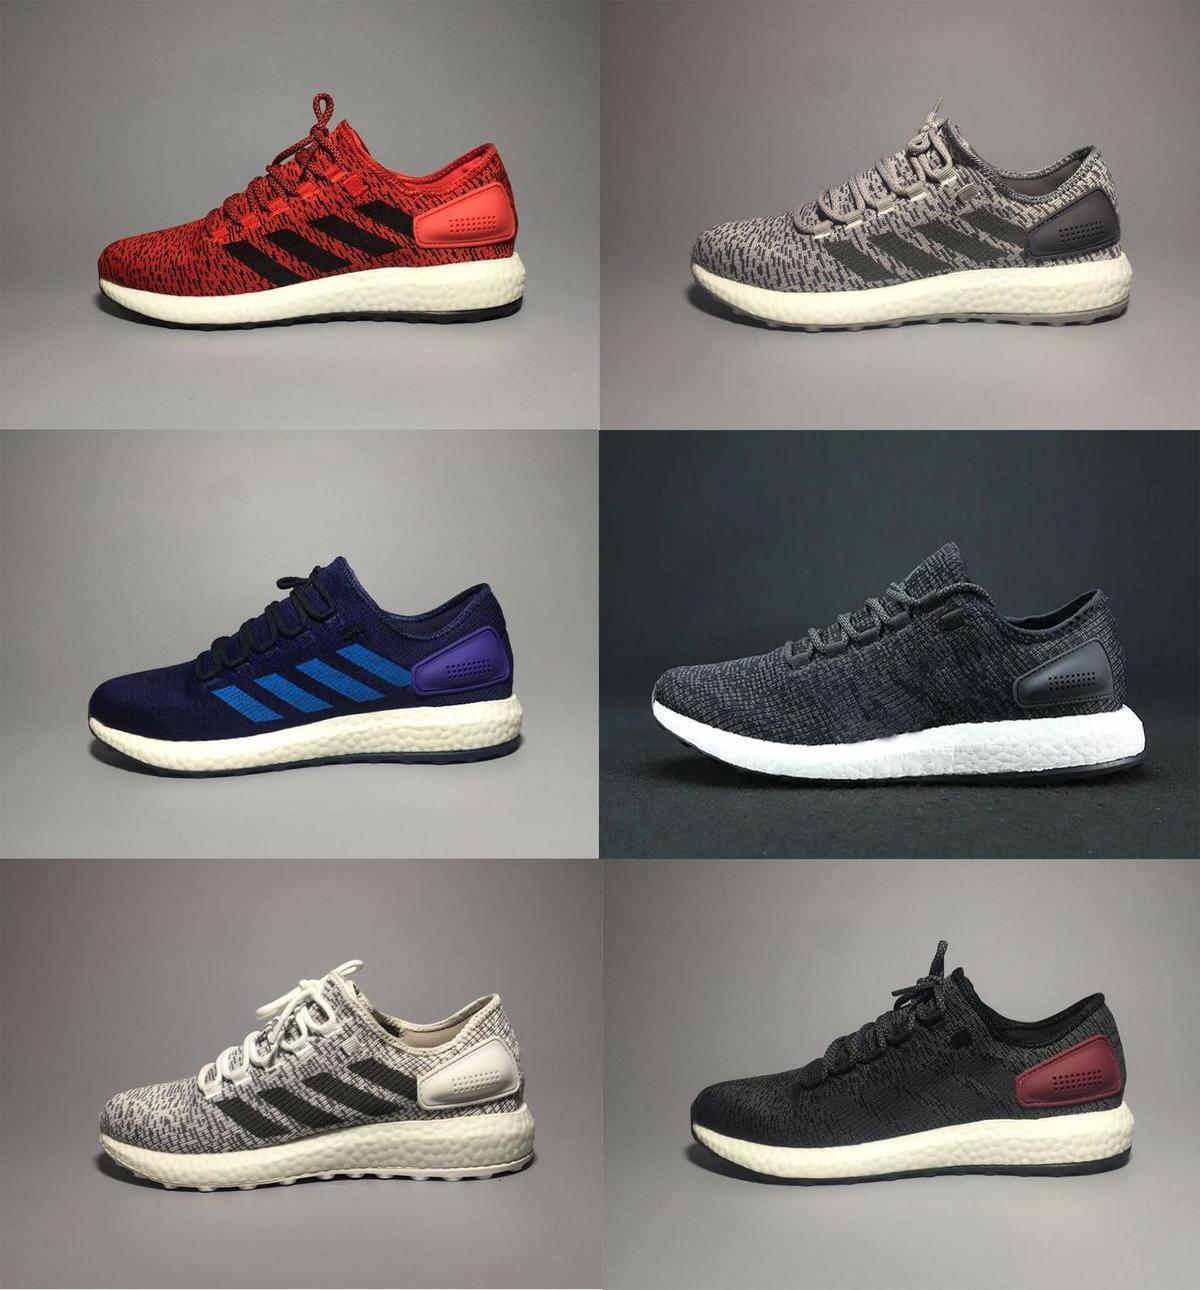 Pure Boost 2.0 II Sports Shoes Men Women Pureboost Running Shoes Pure Boost Trainer Sneaker shoes EUR 36-45 cheap online outlet looking for R2puJOs3I